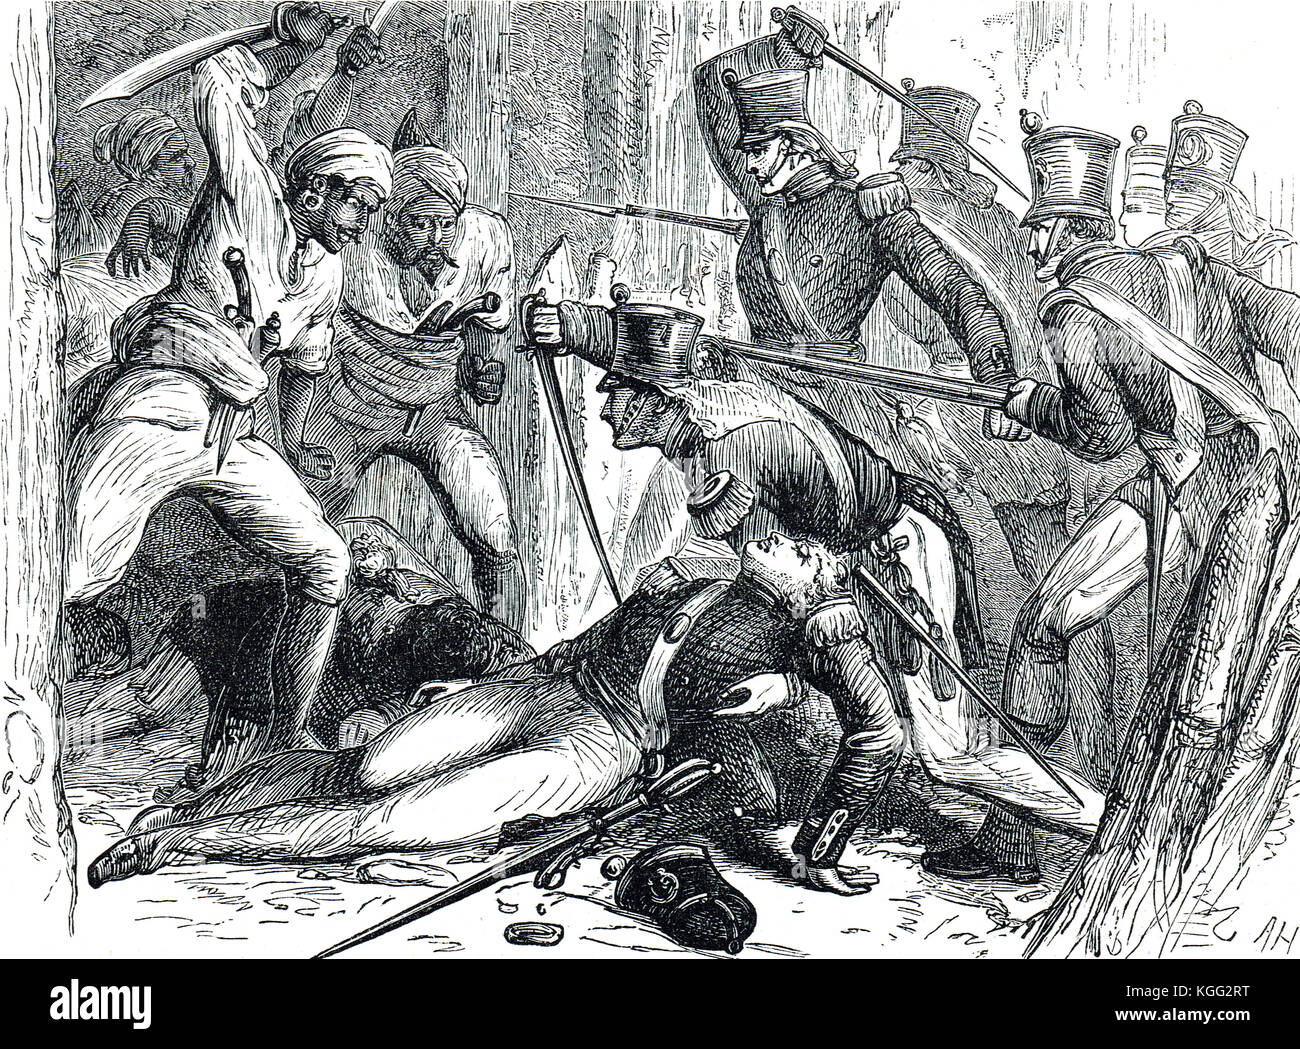 Rescue of Lieutenant-Colonel Macgregor Murray, Battle of Thalner 1818 - Stock Image